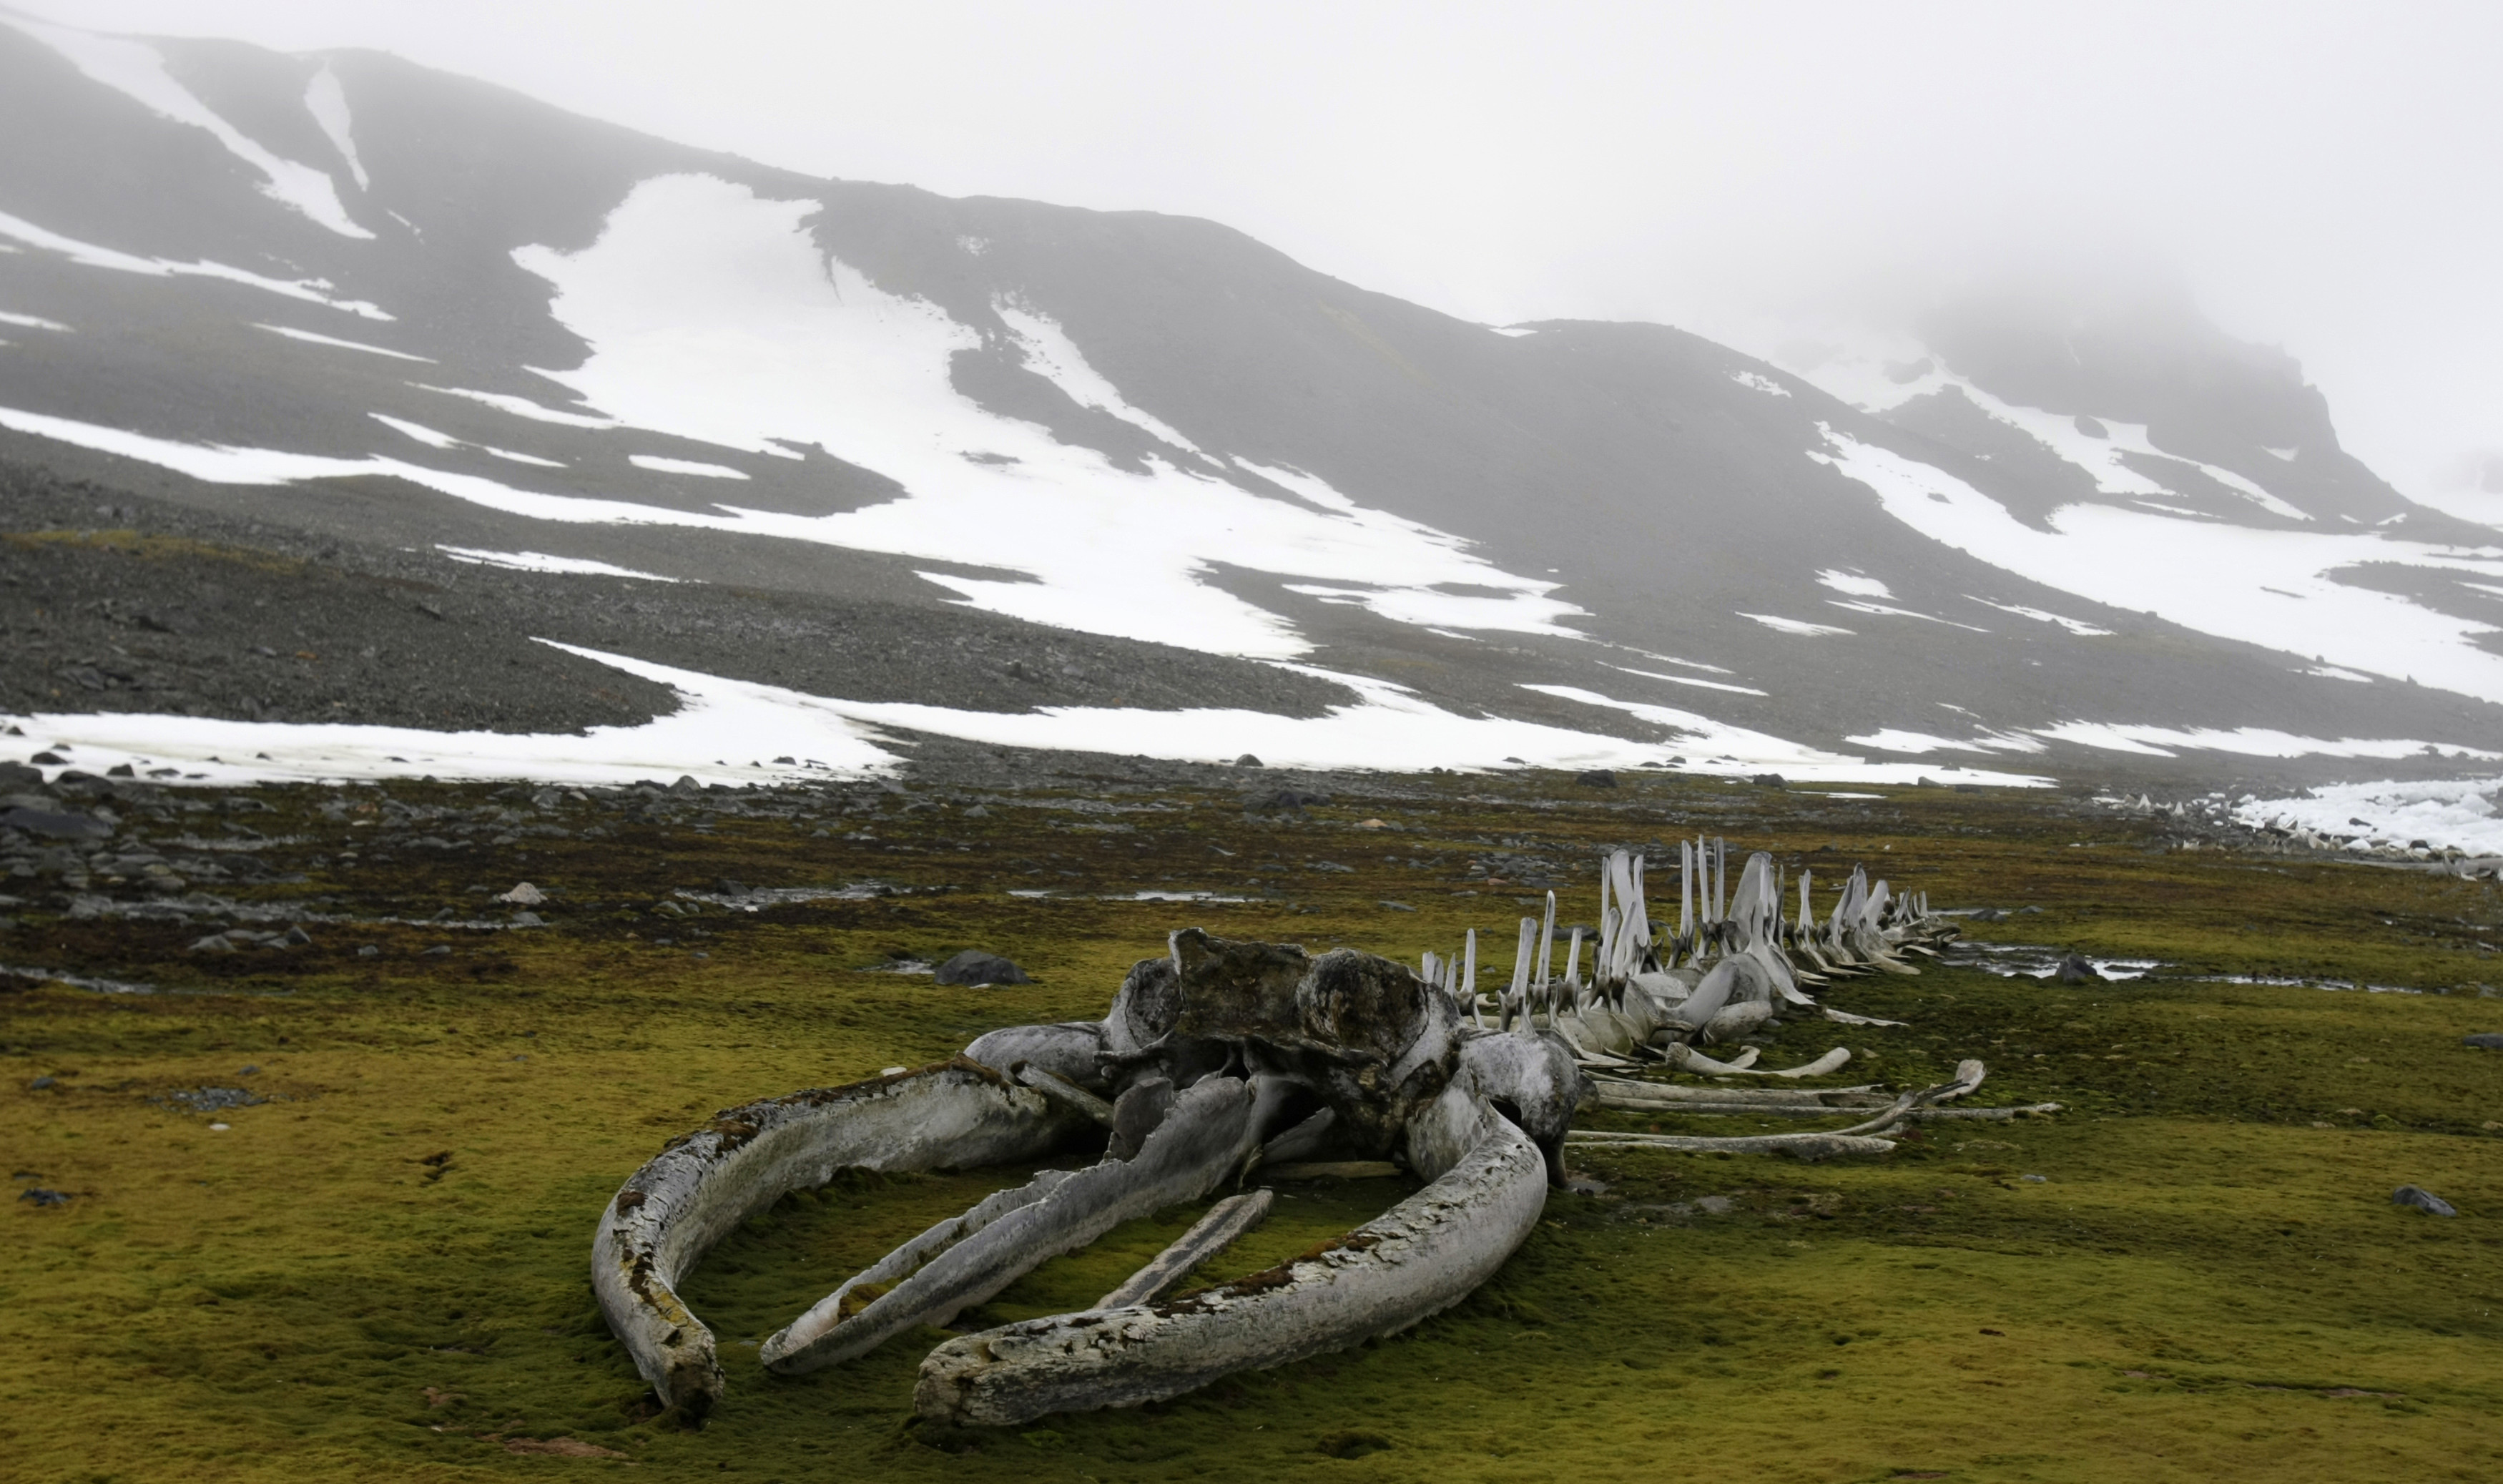 A whale fossil is seen near to the Commandante Ferraz Brazilian Antarctic Station located in Admiralty Bay, King George Island on the Antarctic continent November 25, 2008. The whale fossil was constructed by French explorer Jacques Cousteau in 1979.    REUTERS/Paulo Whitaker   (ANTARCTICA) - GM1E4BQ0FJ201